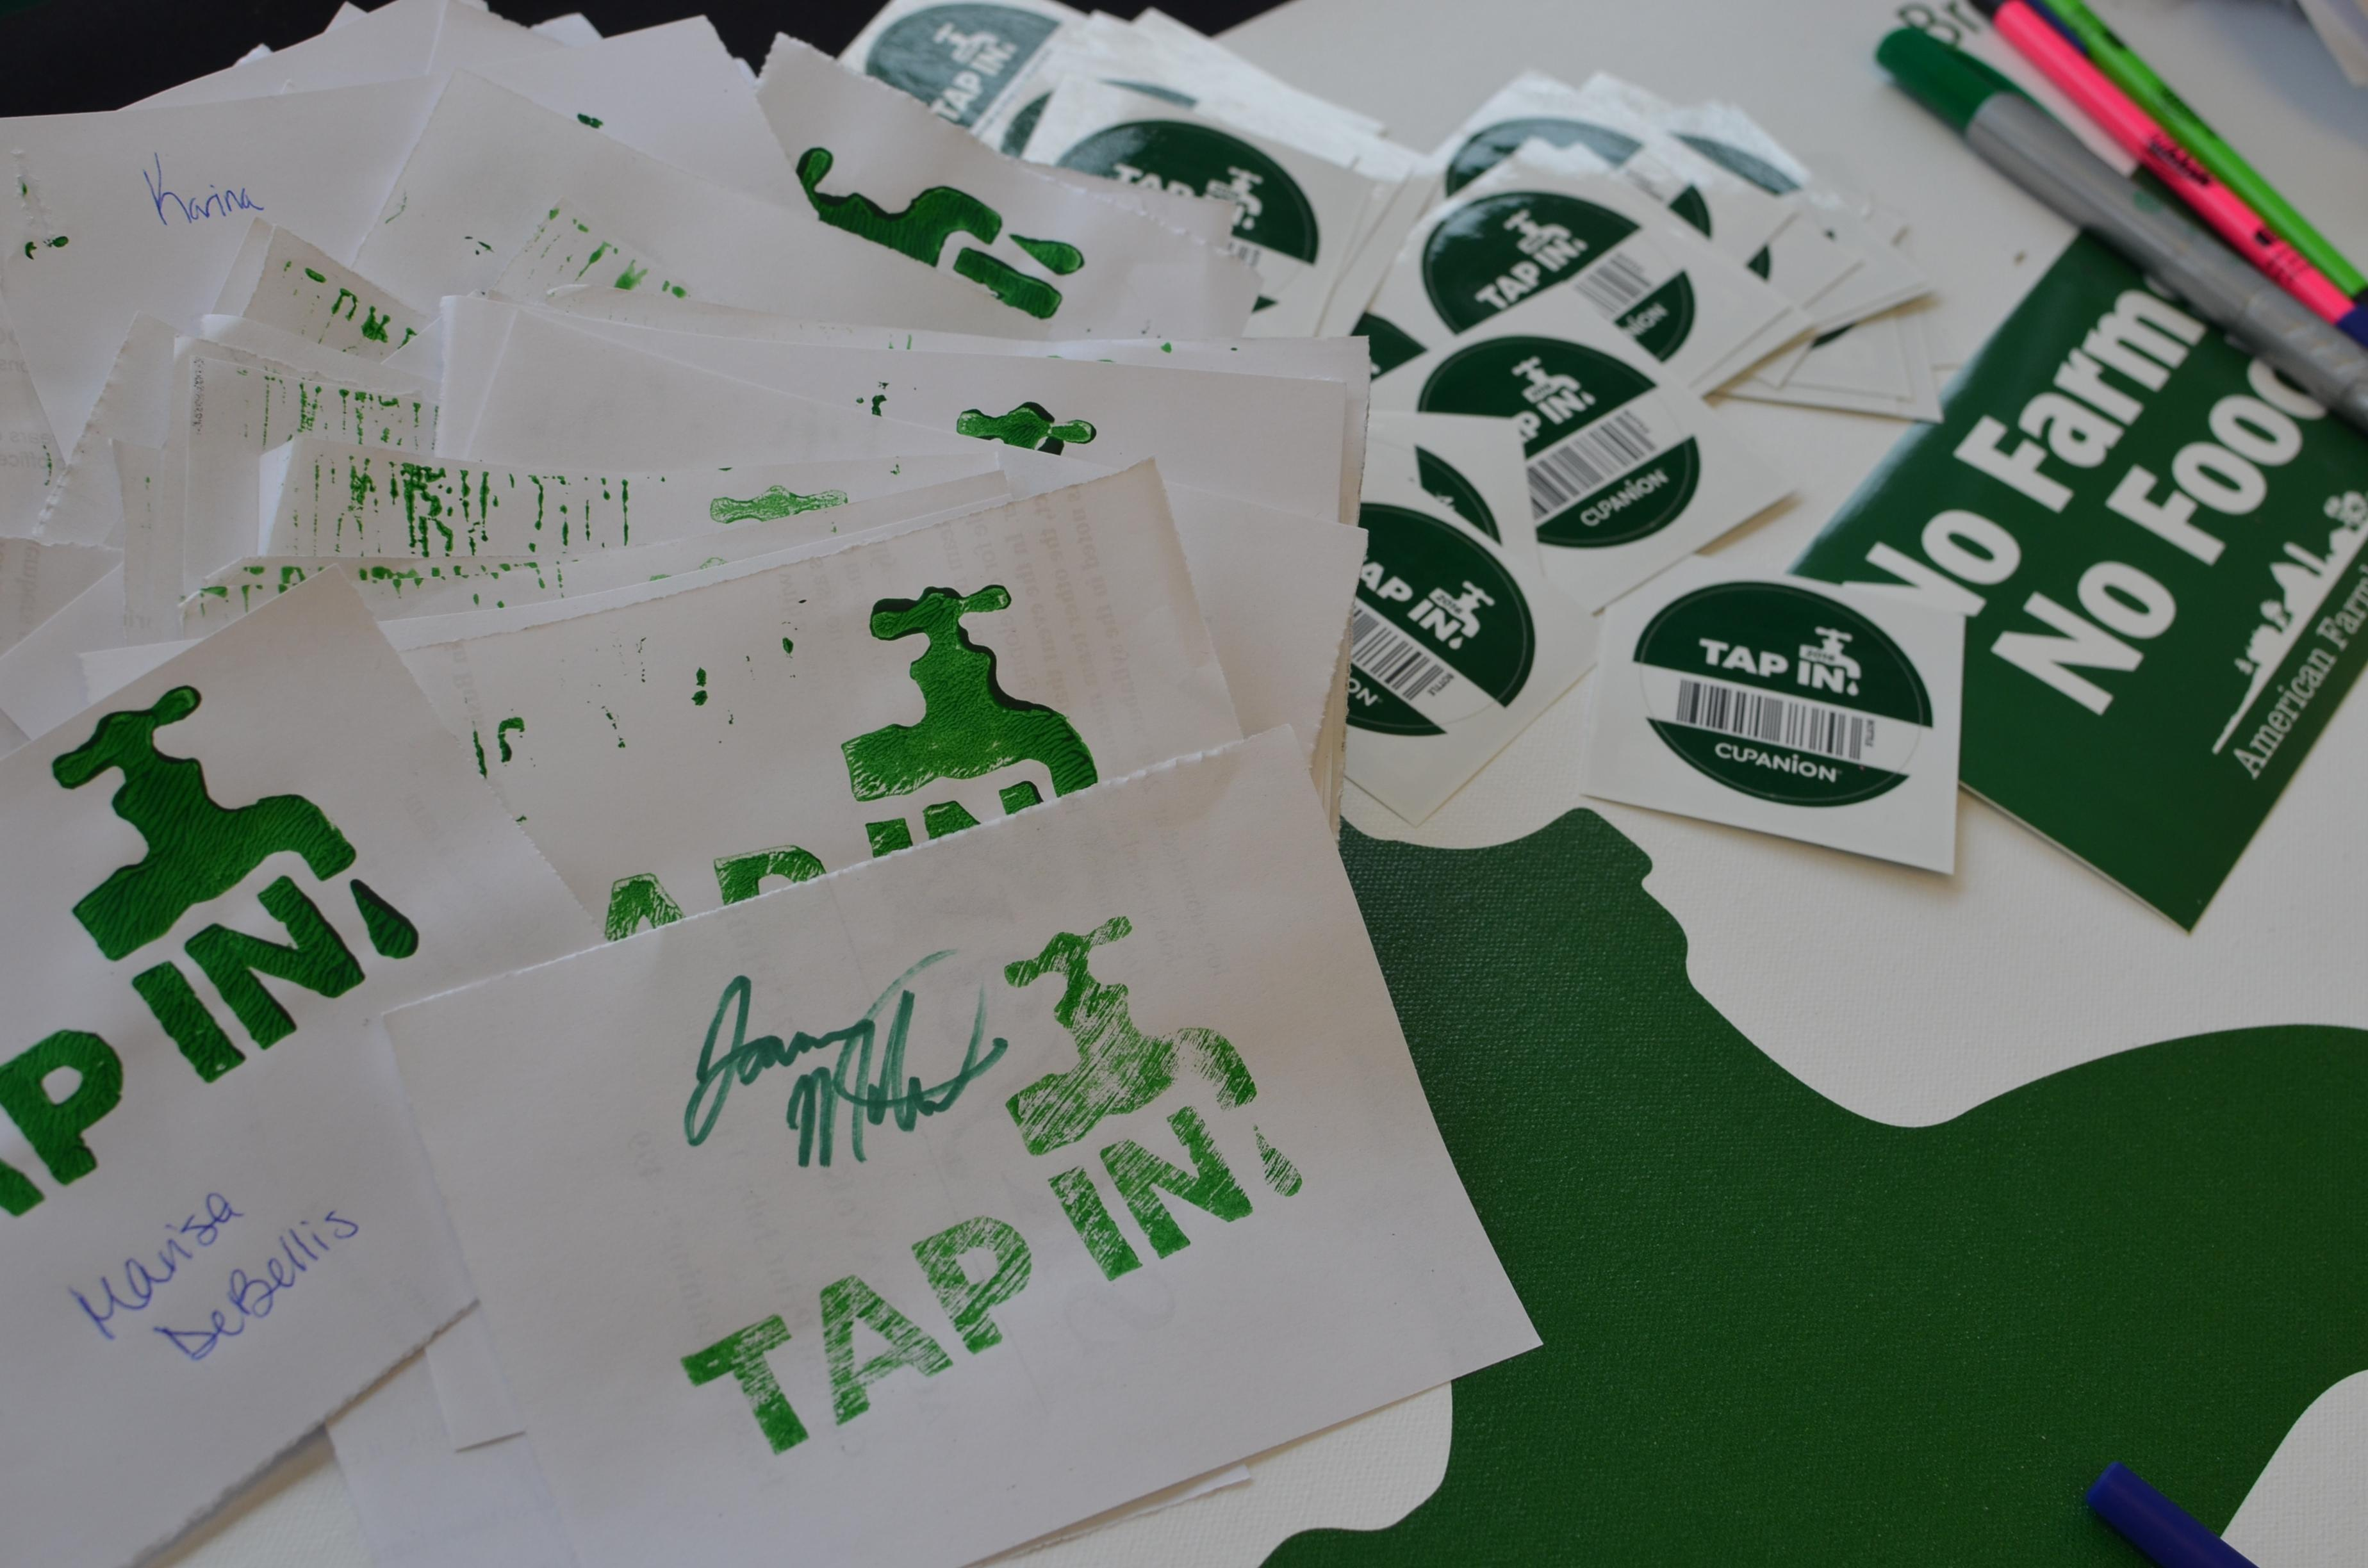 Image of pledges and sticker provided to students.